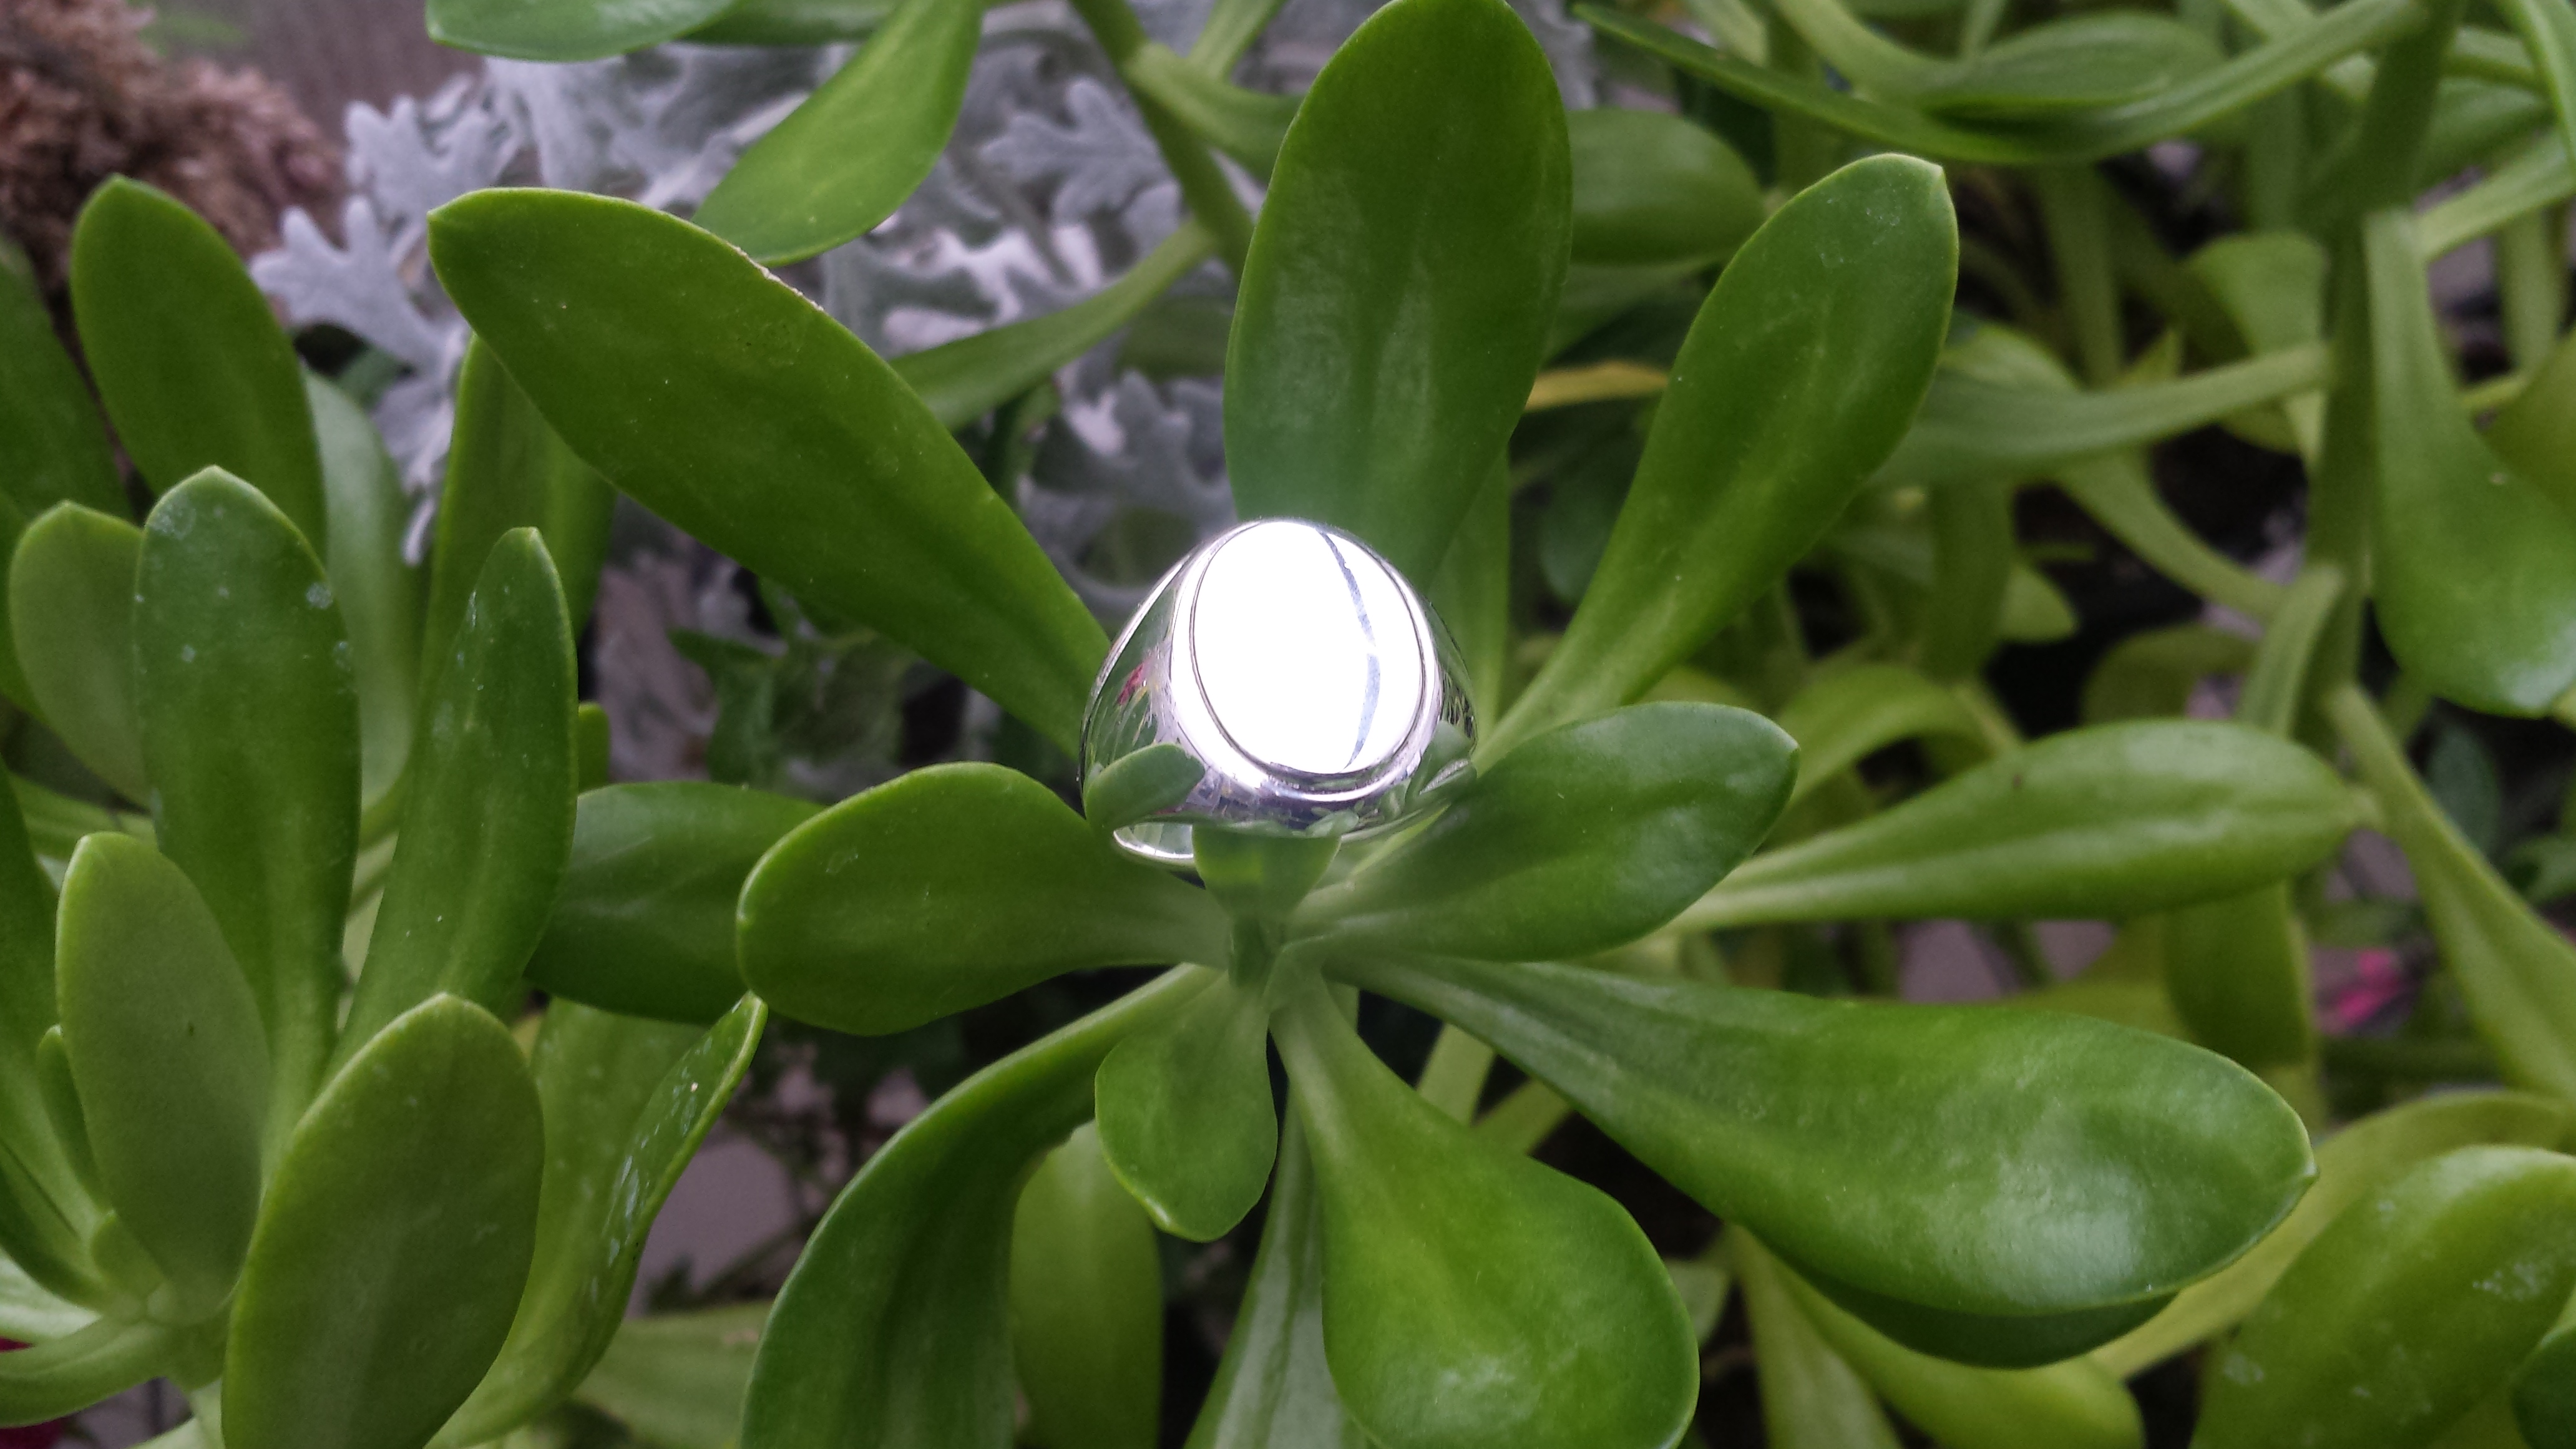 WONDERFUL 925 STERLING SILVER  OVAL RING IDEAL FOR MEN 12 G.